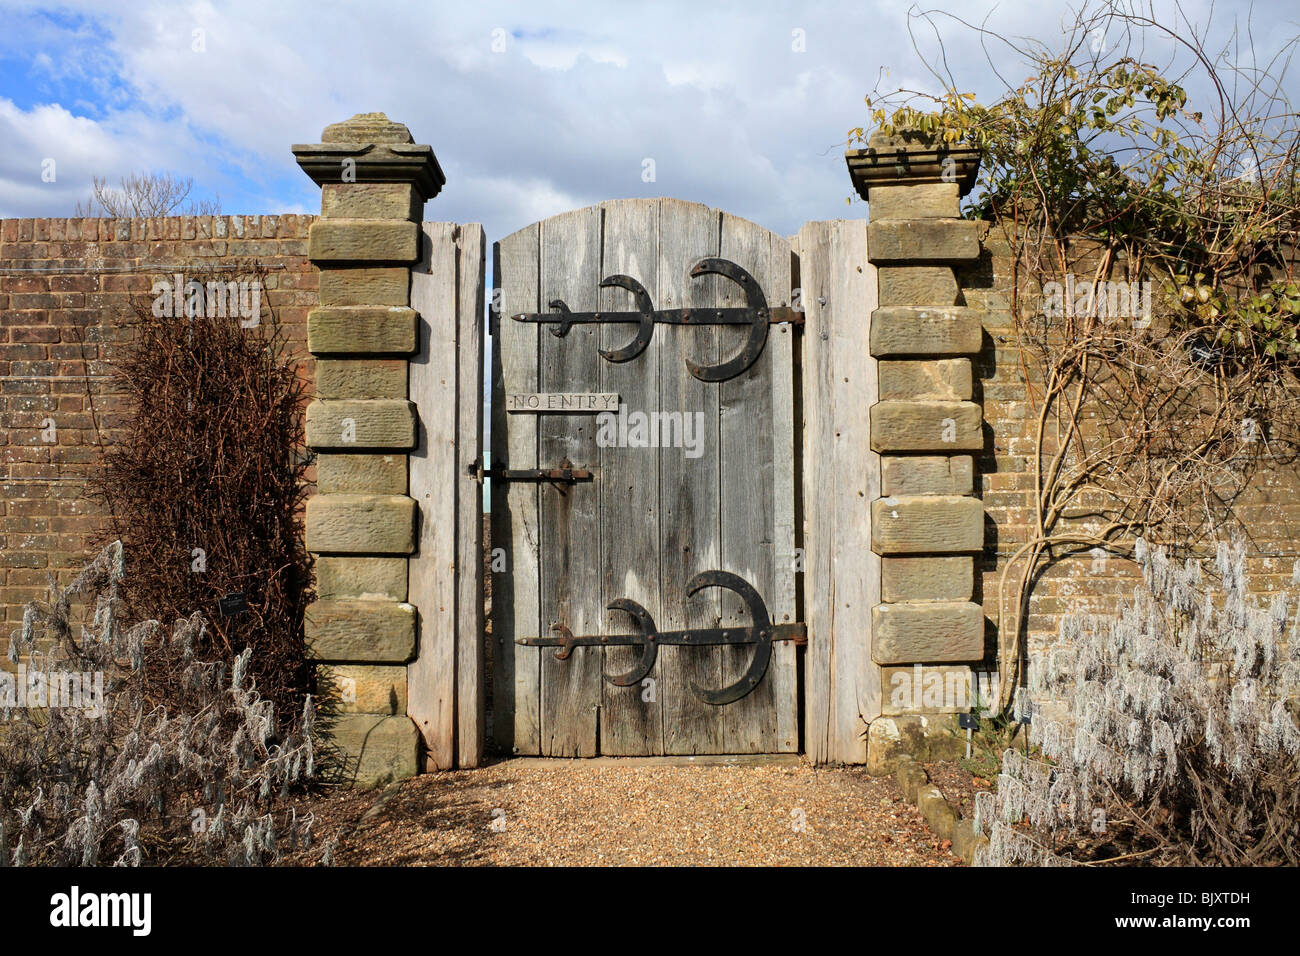 Stock Photo   Sturdy Old Wooden Garden Gate With No Entry Sign And Large  Brass Hinges, Sussex England UK